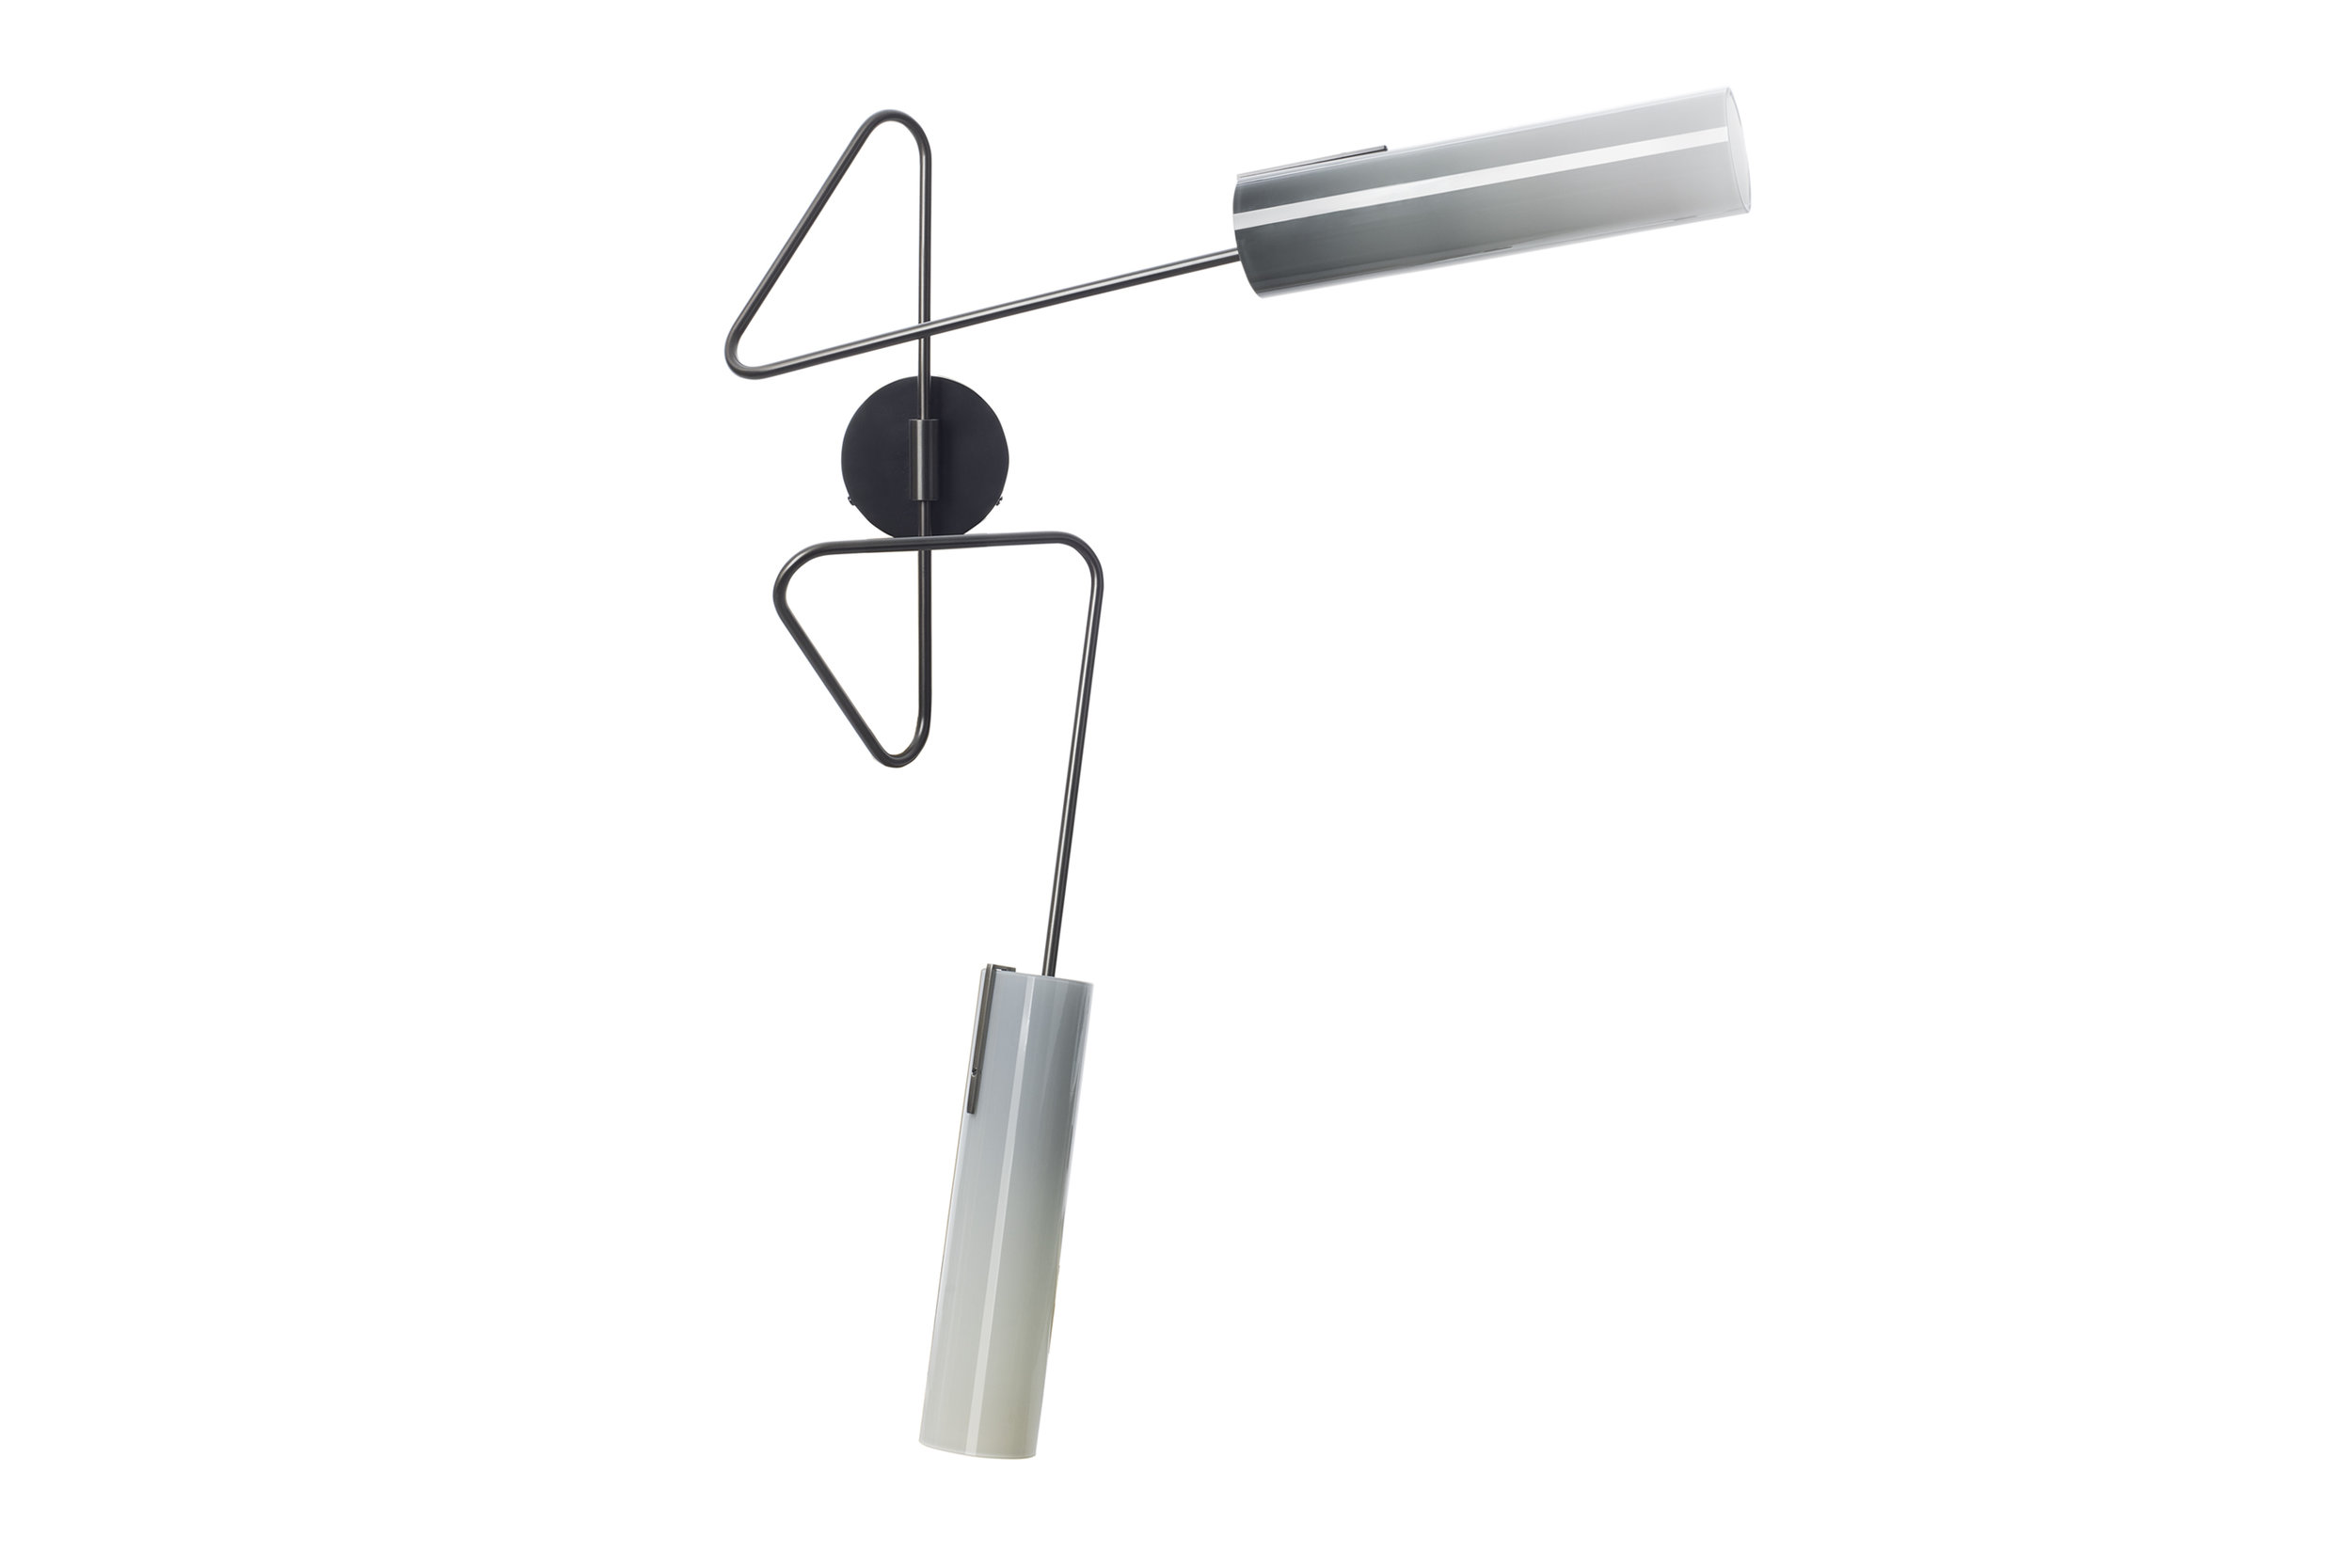 Avram_Rusu_Continuum_Sconce_Model_4_1.jpg